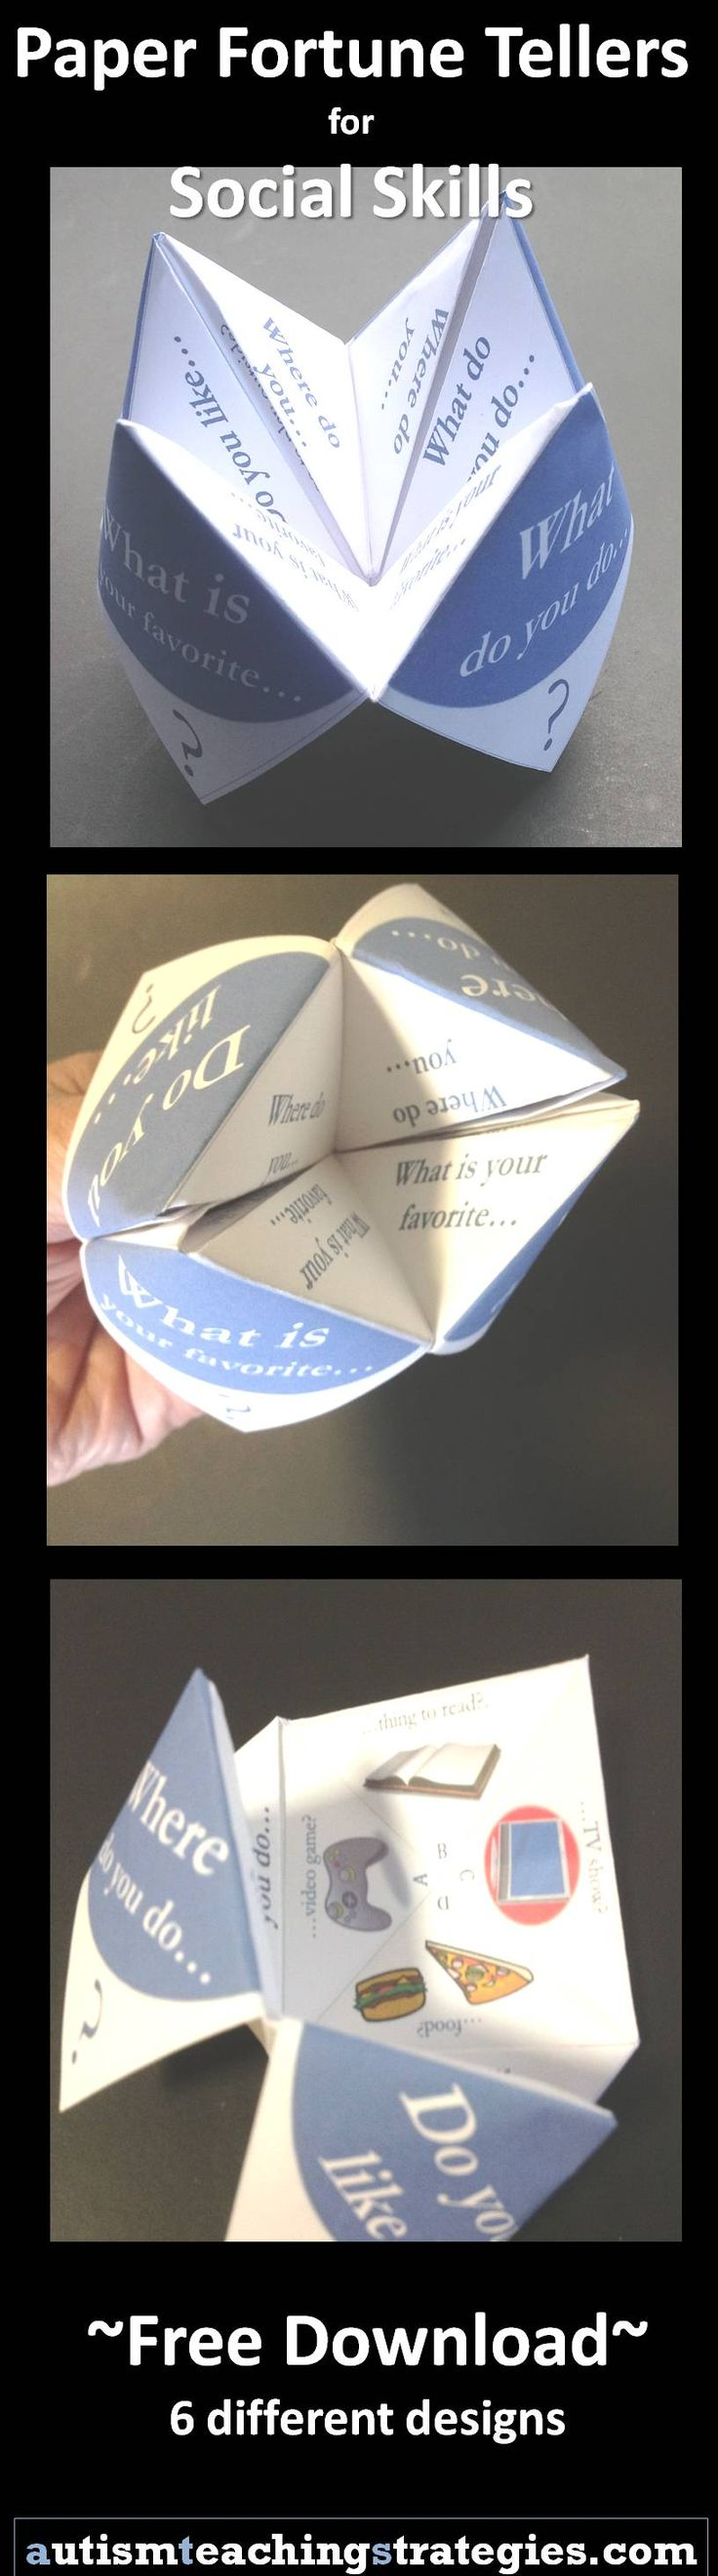 "Fold these free ""fortune tellers"" into social skills games for conversation, etc. Six different varieties."